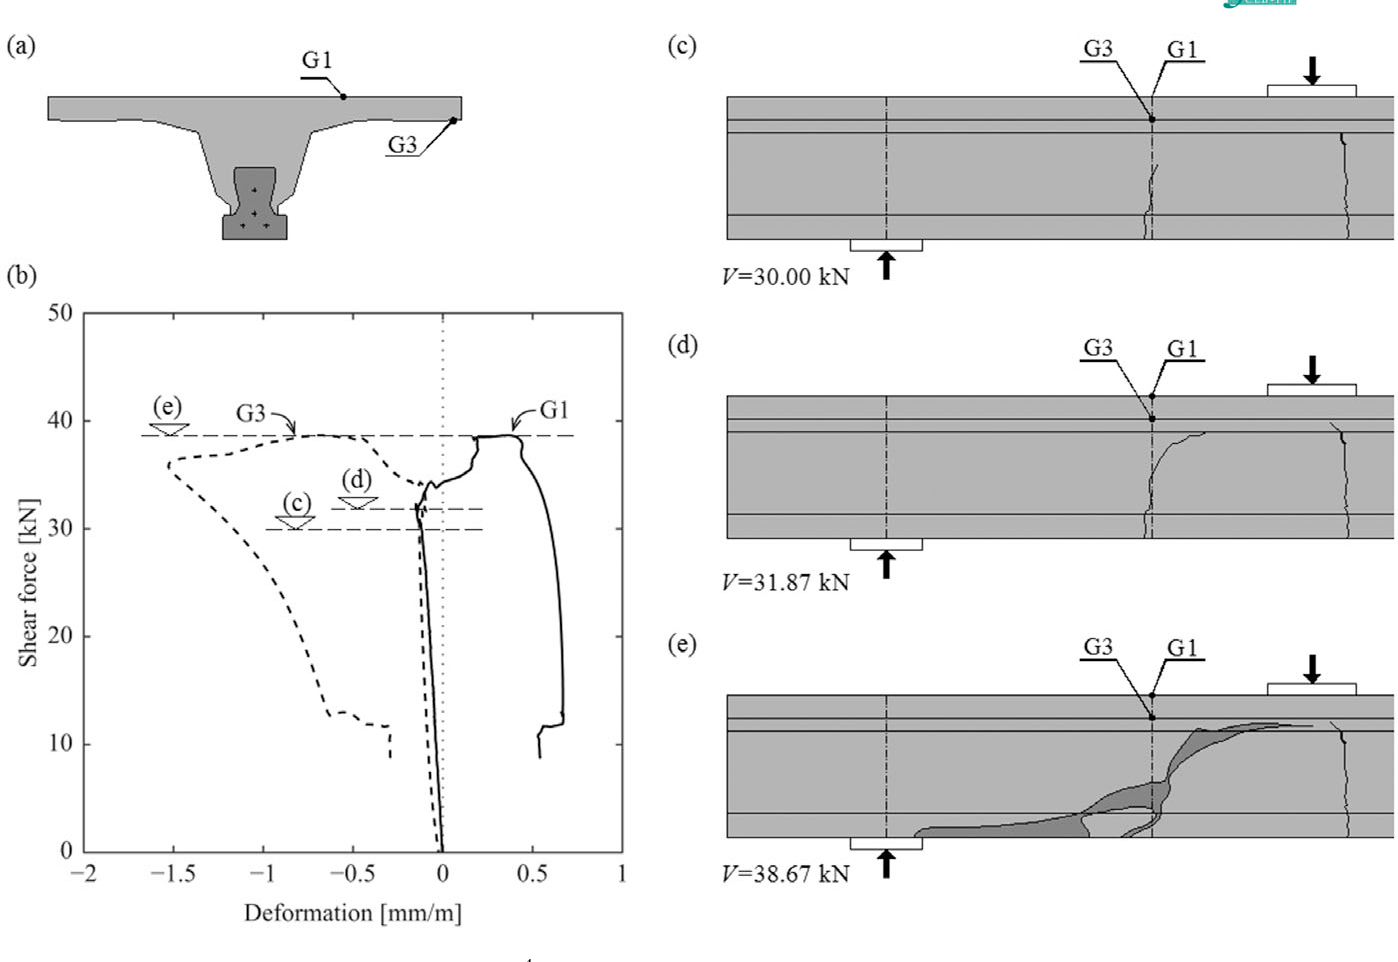 Influence of flanges on the shear-carrying capacity of